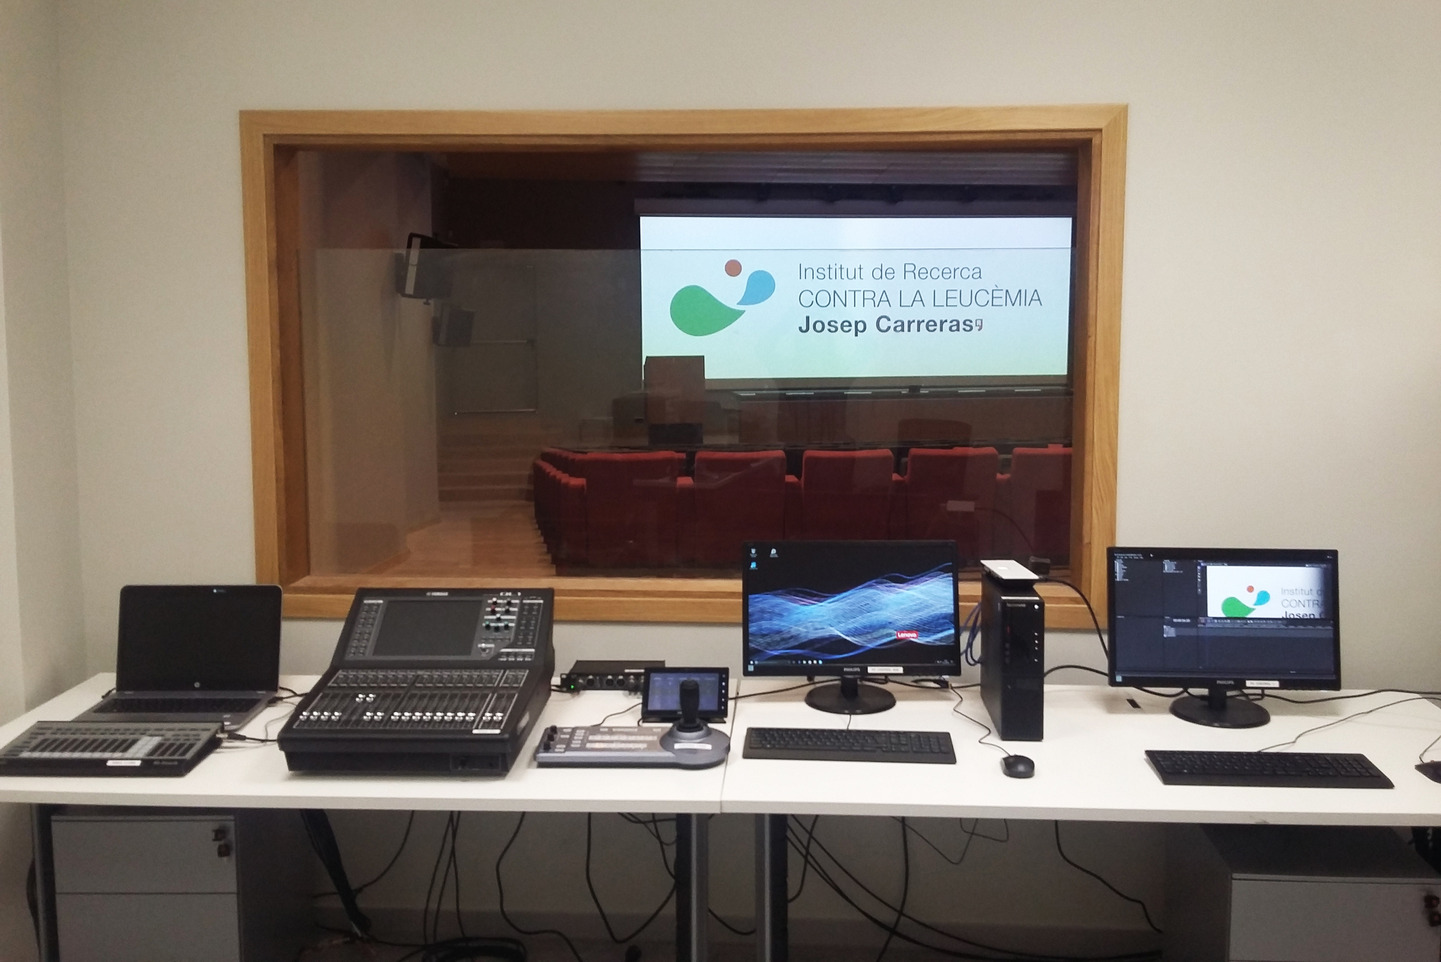 Charmex supplies the latest in audiovisual technology to the Josep Carreras Leukemia Research Institute